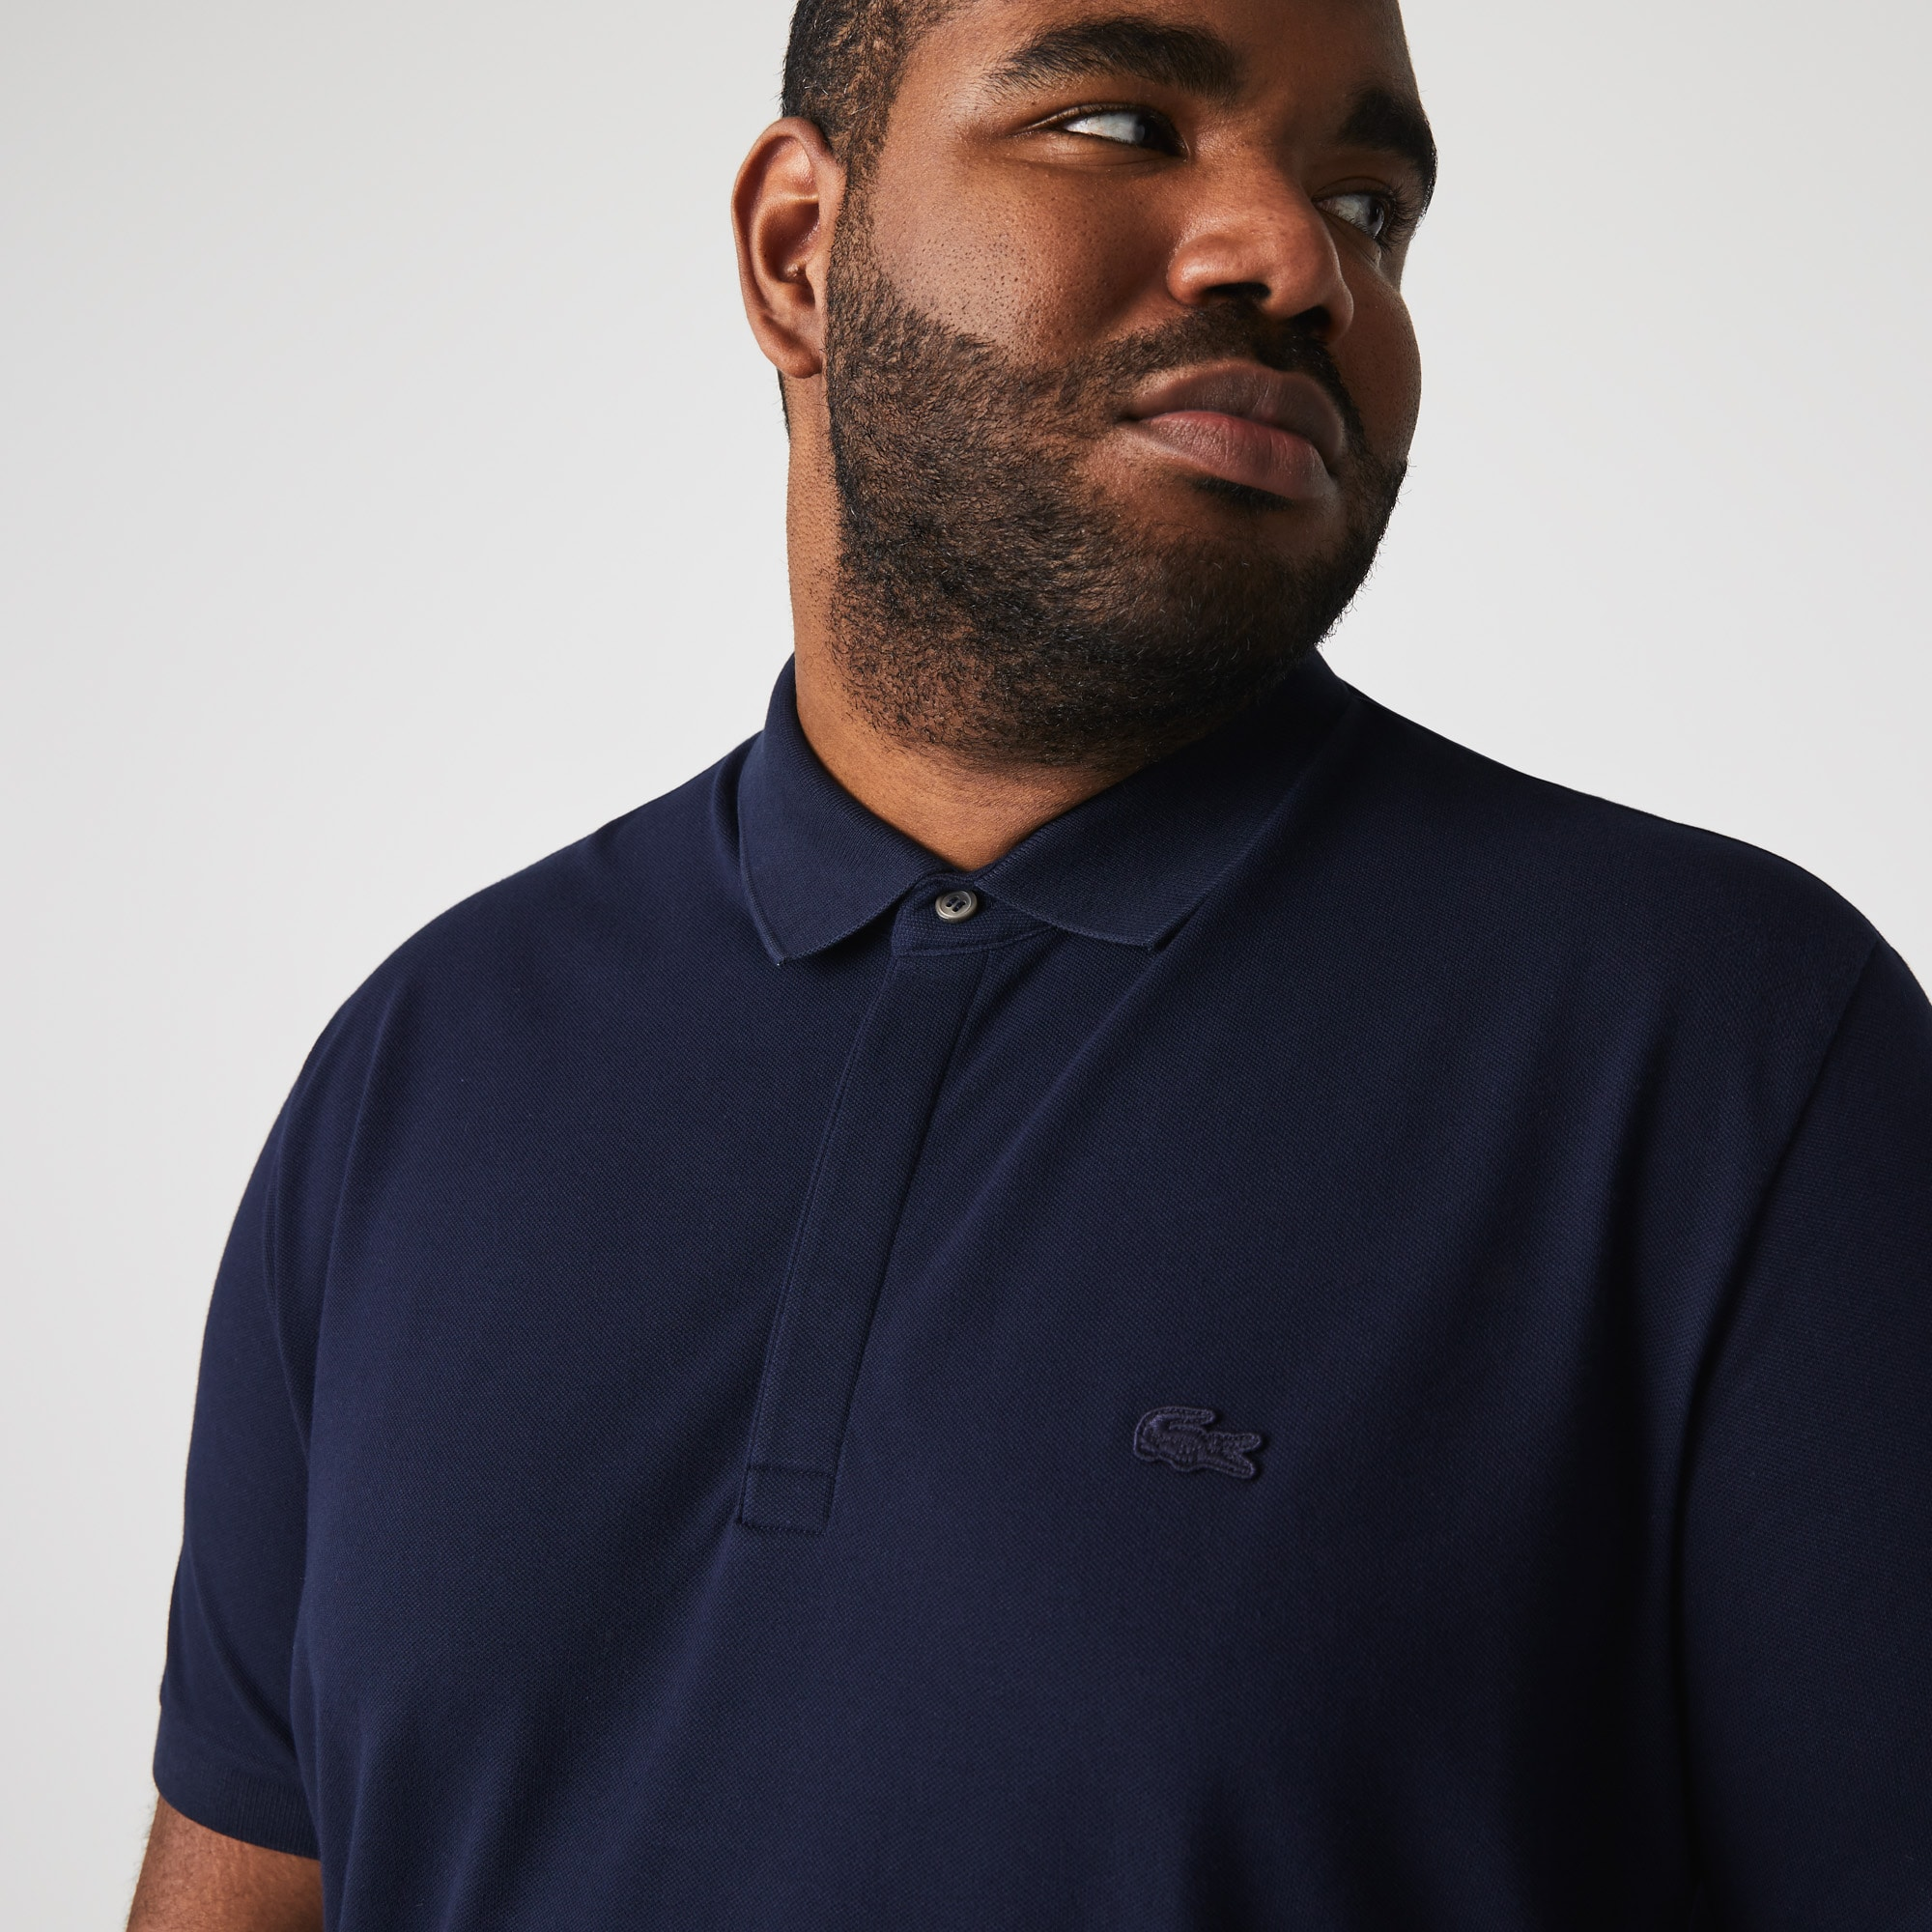 Lacoste - Paris Polo regular fit Lacoste en piqué de coton stretch - 7